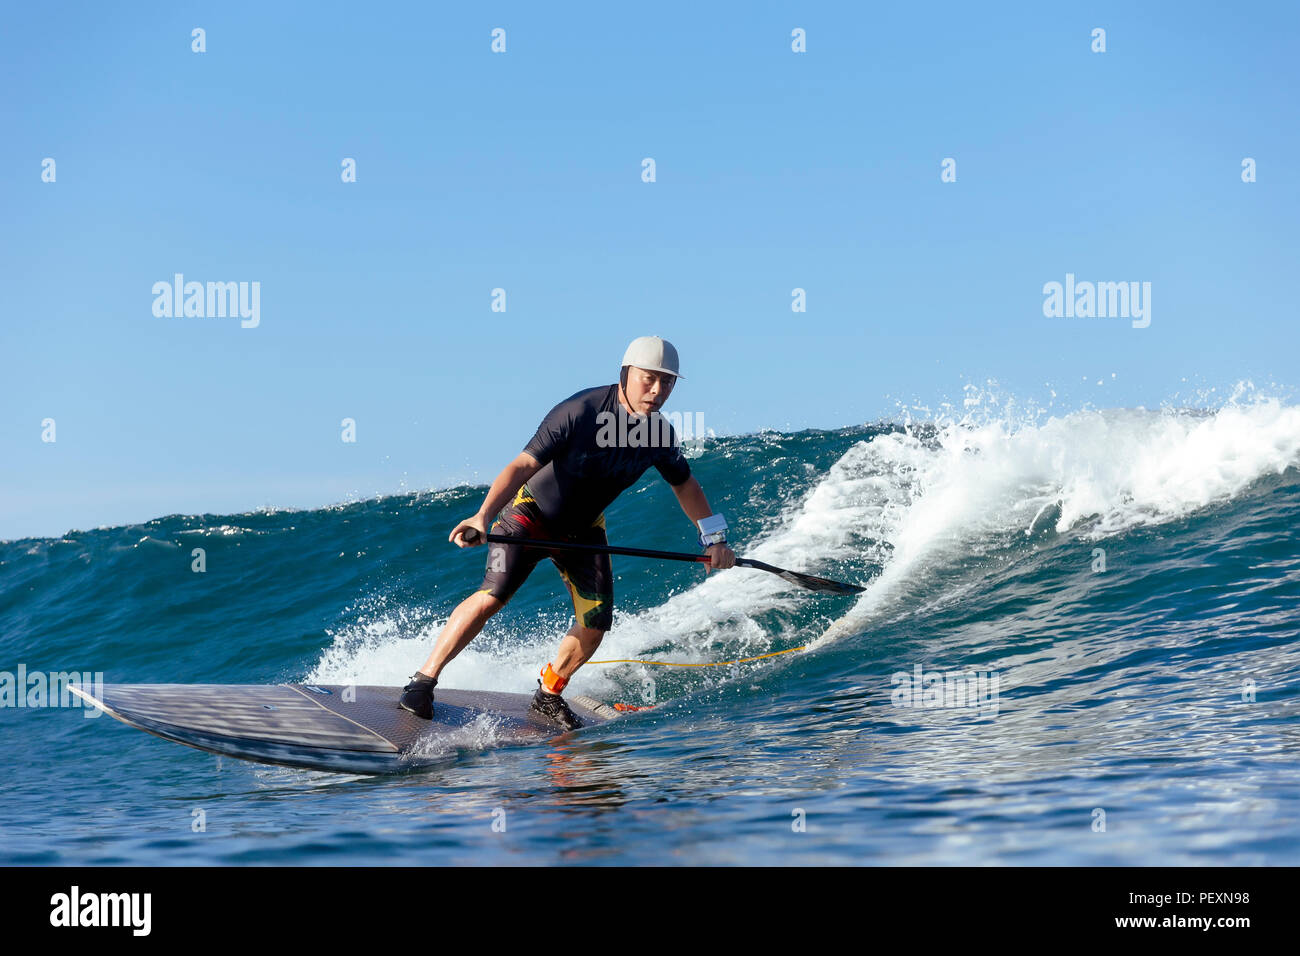 Paddle surfer riding wave - Stock Image